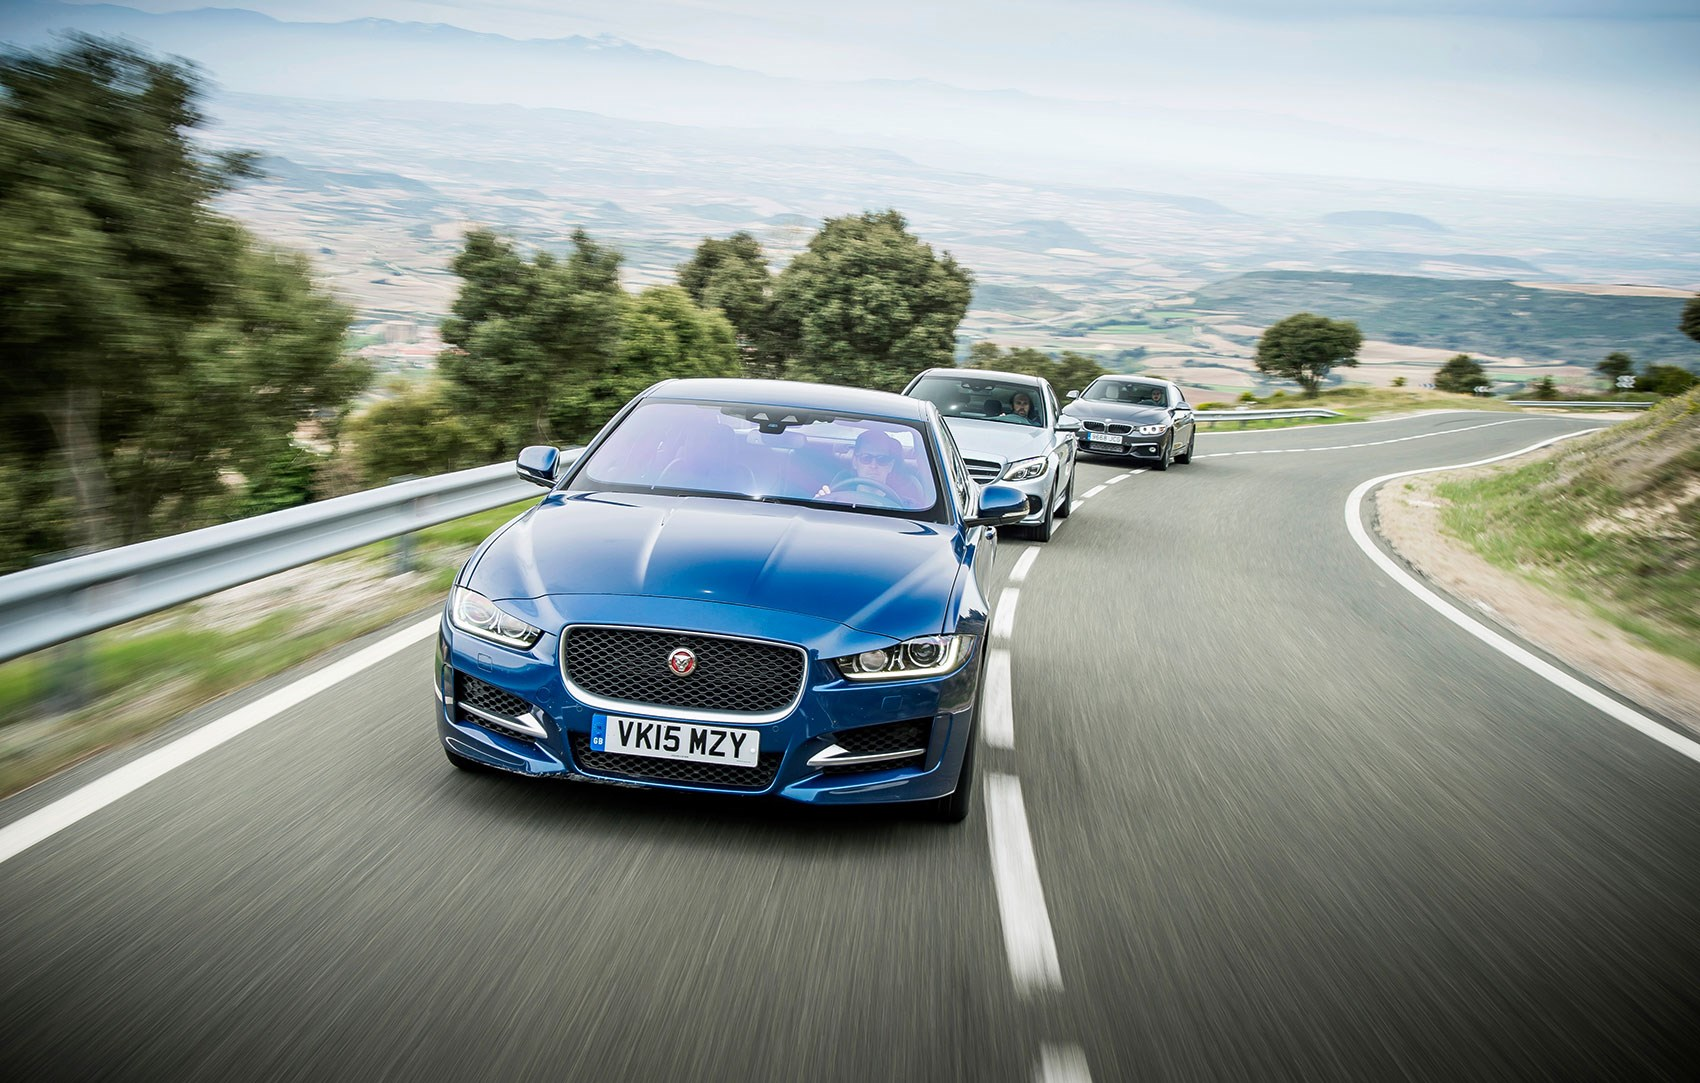 Jaguar XE Fights BMW 3 Series Merc C Class Photographed For CAR By Jamie Lipman